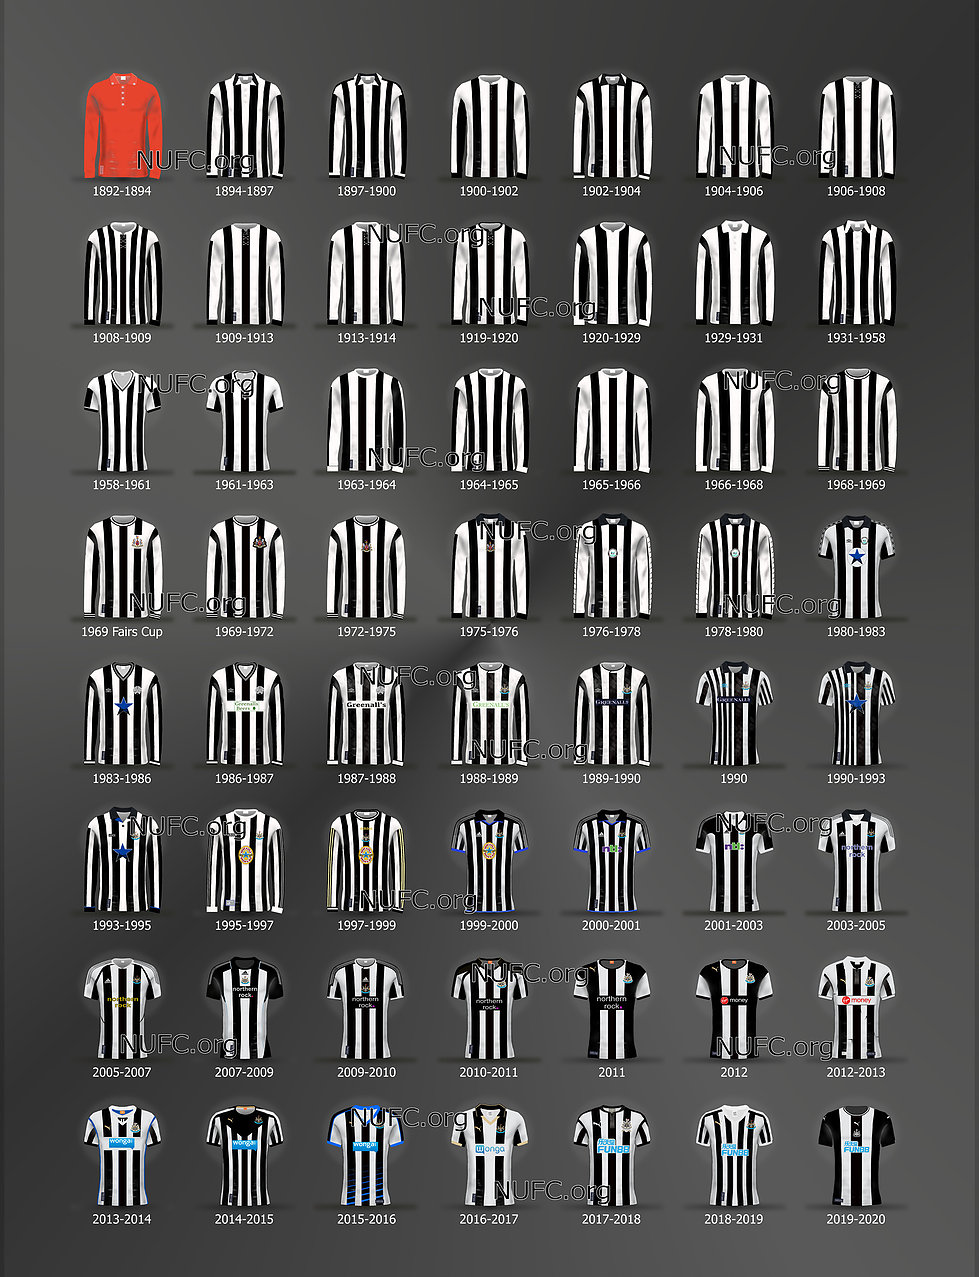 The history of NUFC home shirts